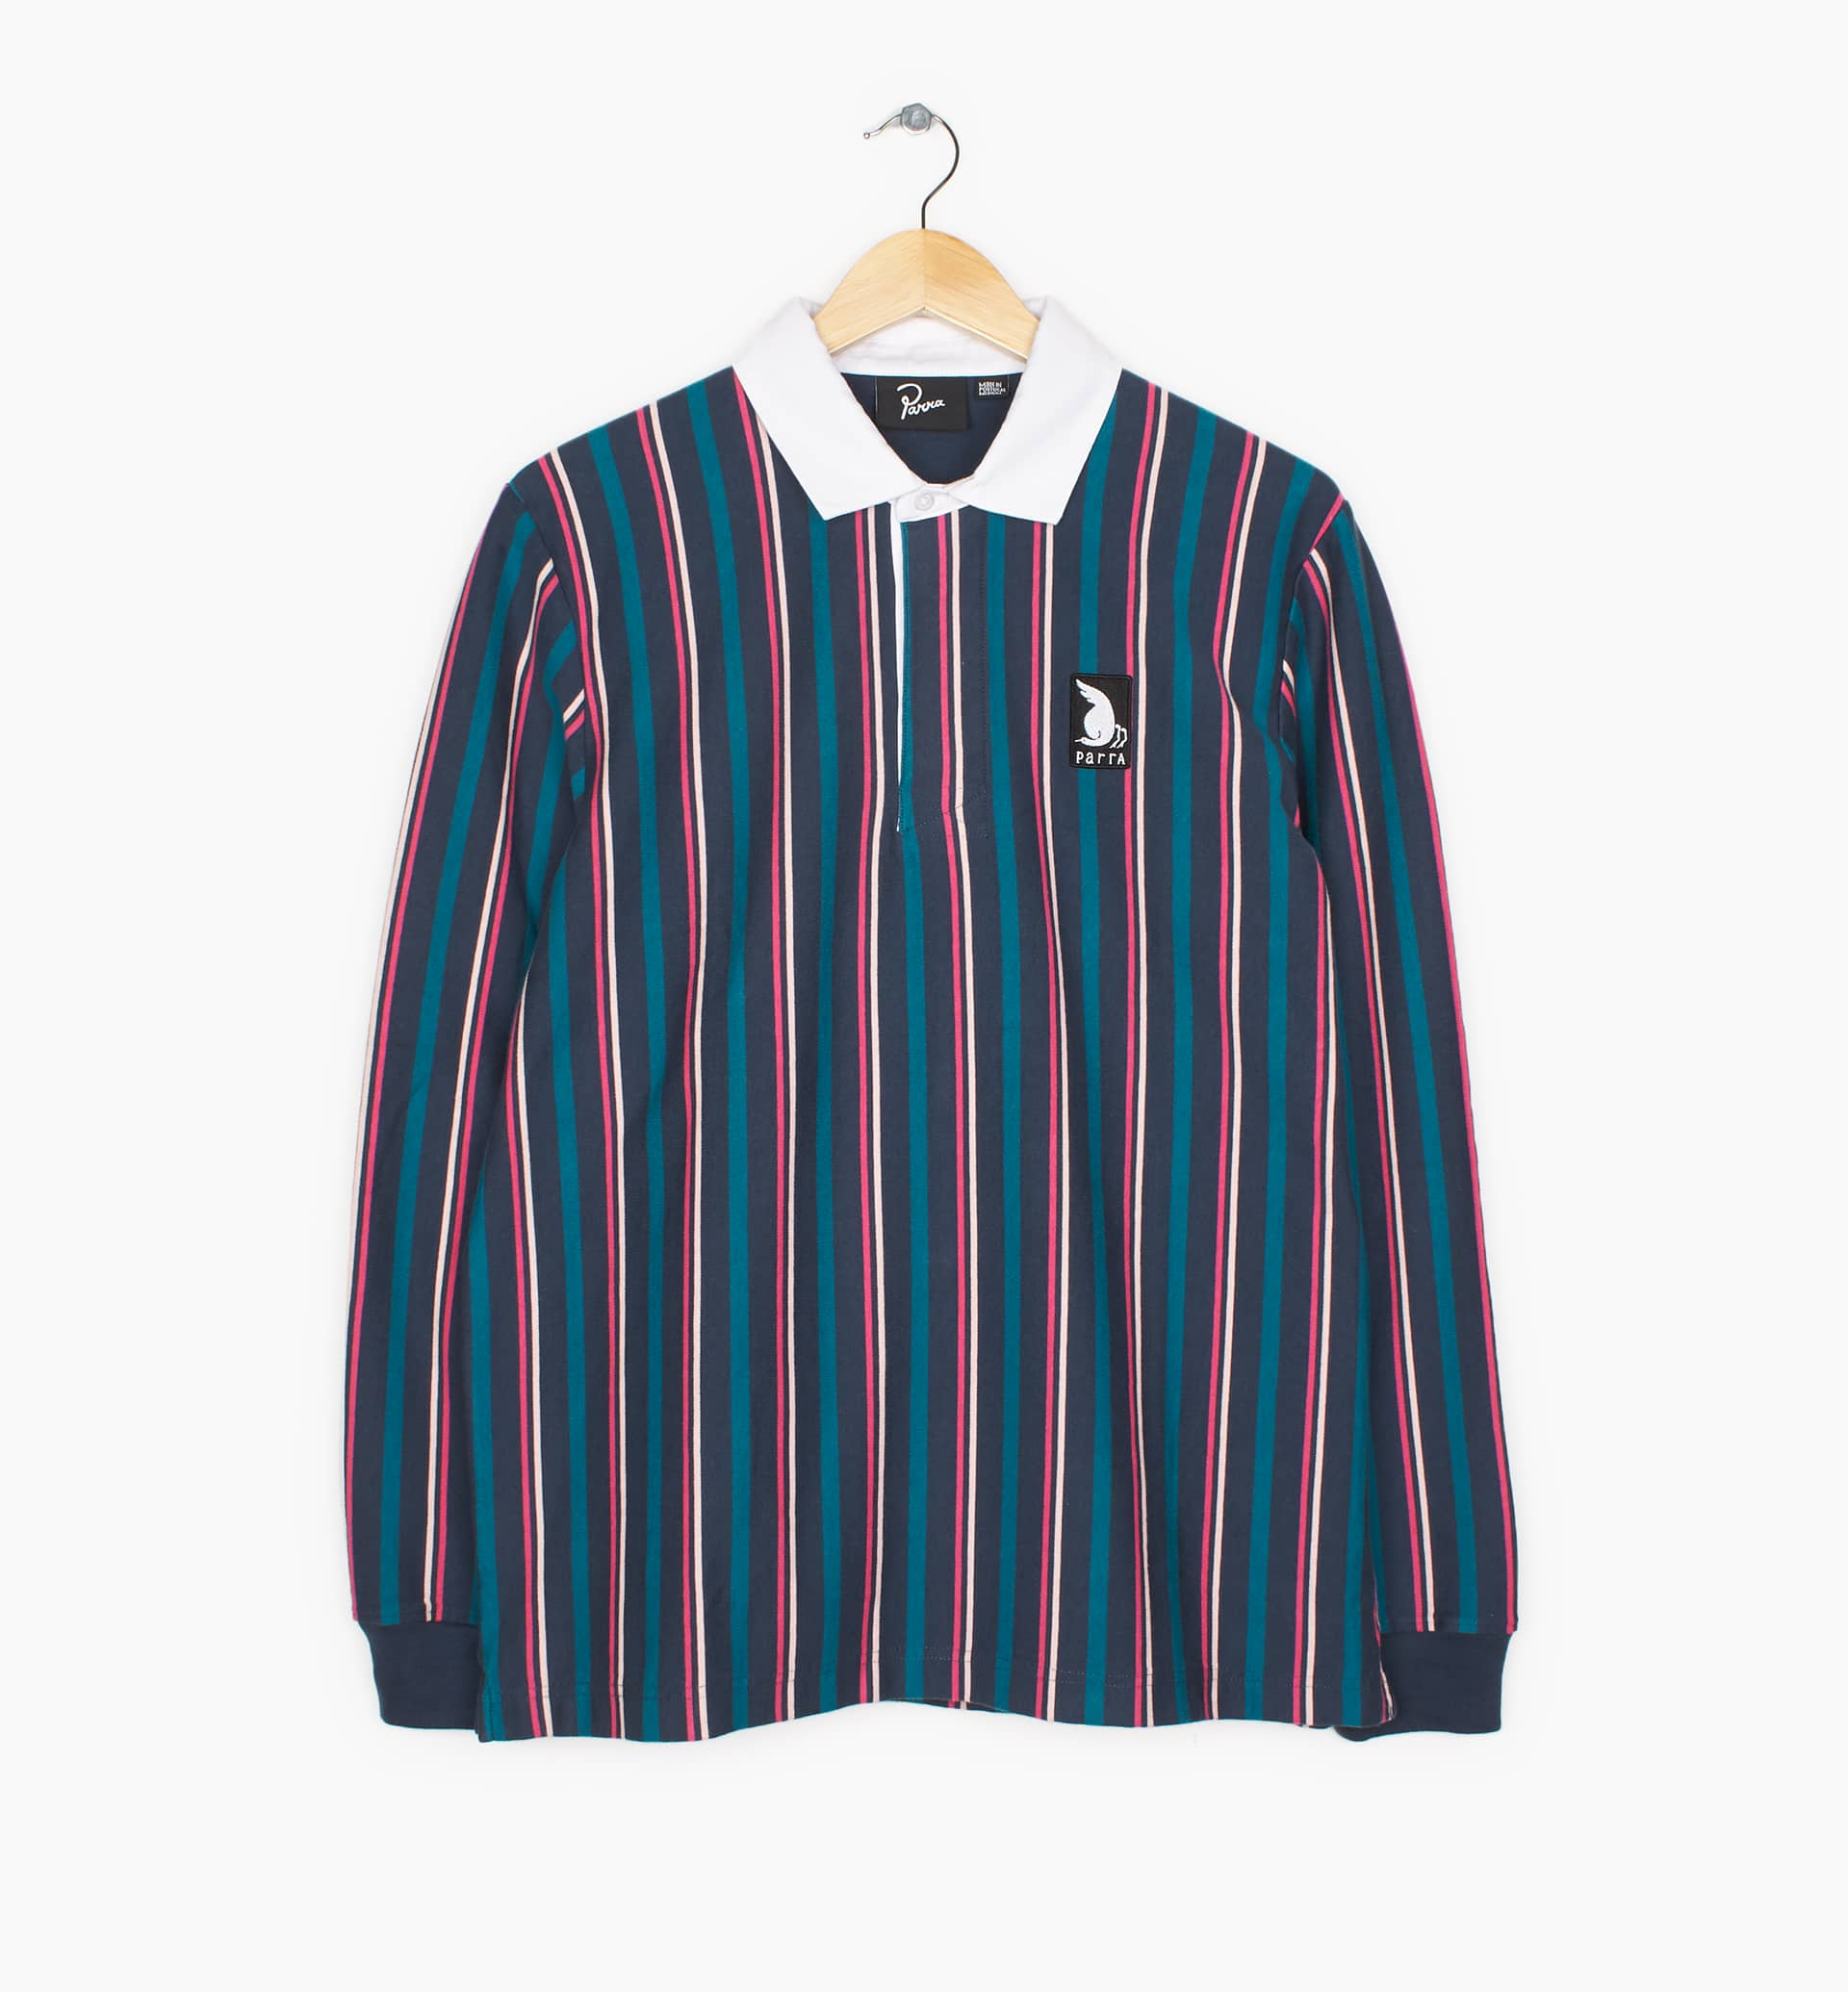 Parra - racing goose rugby shirt